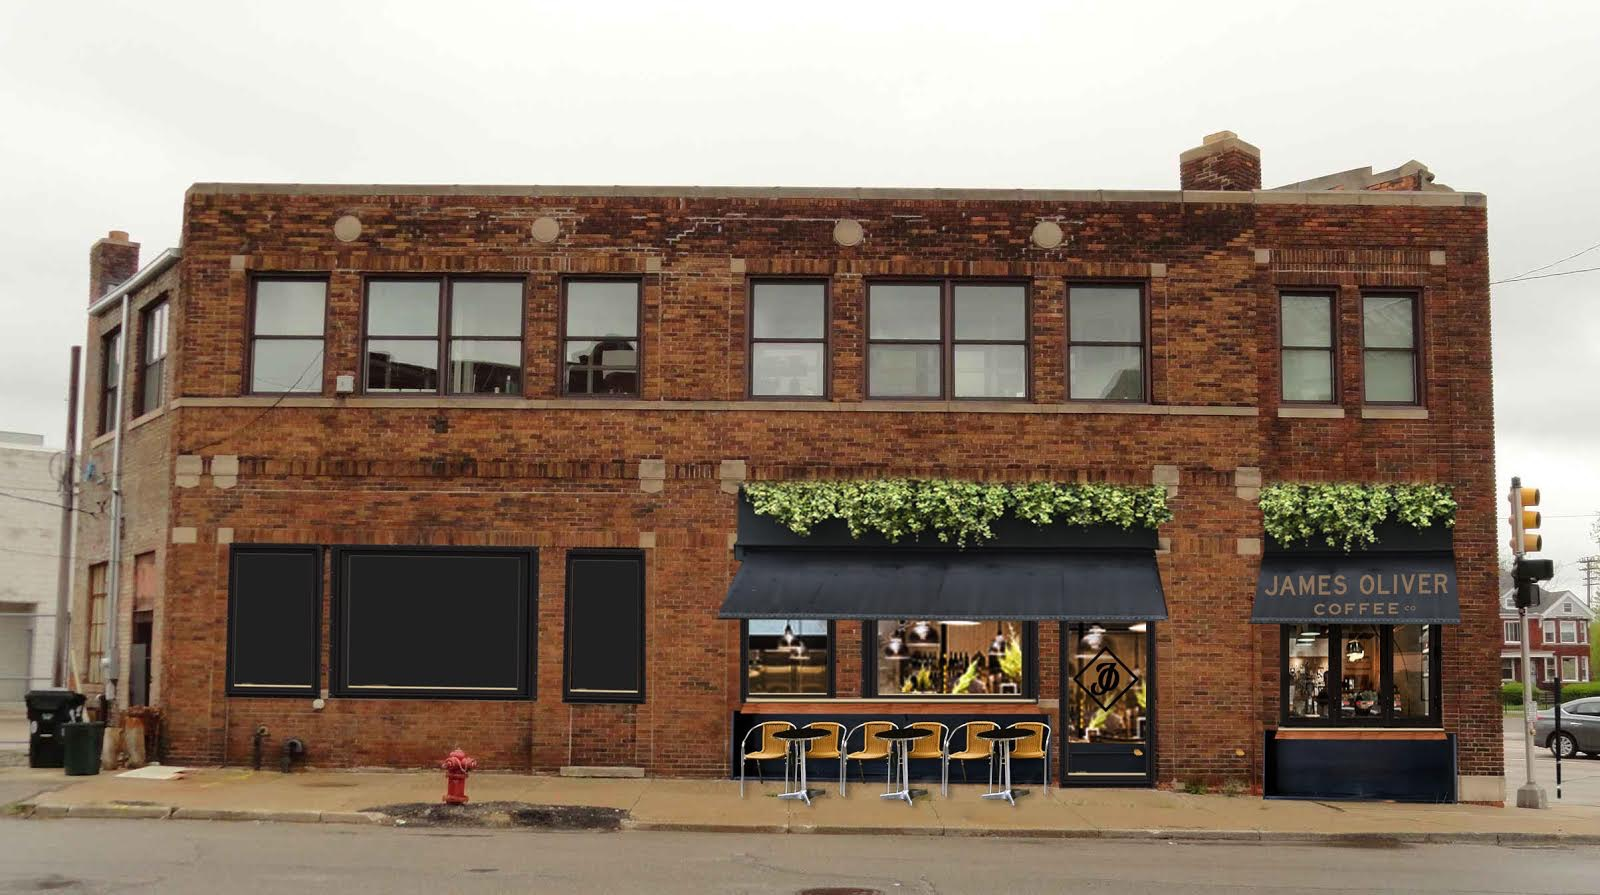 An architectural rendering of the planned James Oliver Coffee Shop on Gratiot Avenue, in a former industrial building.